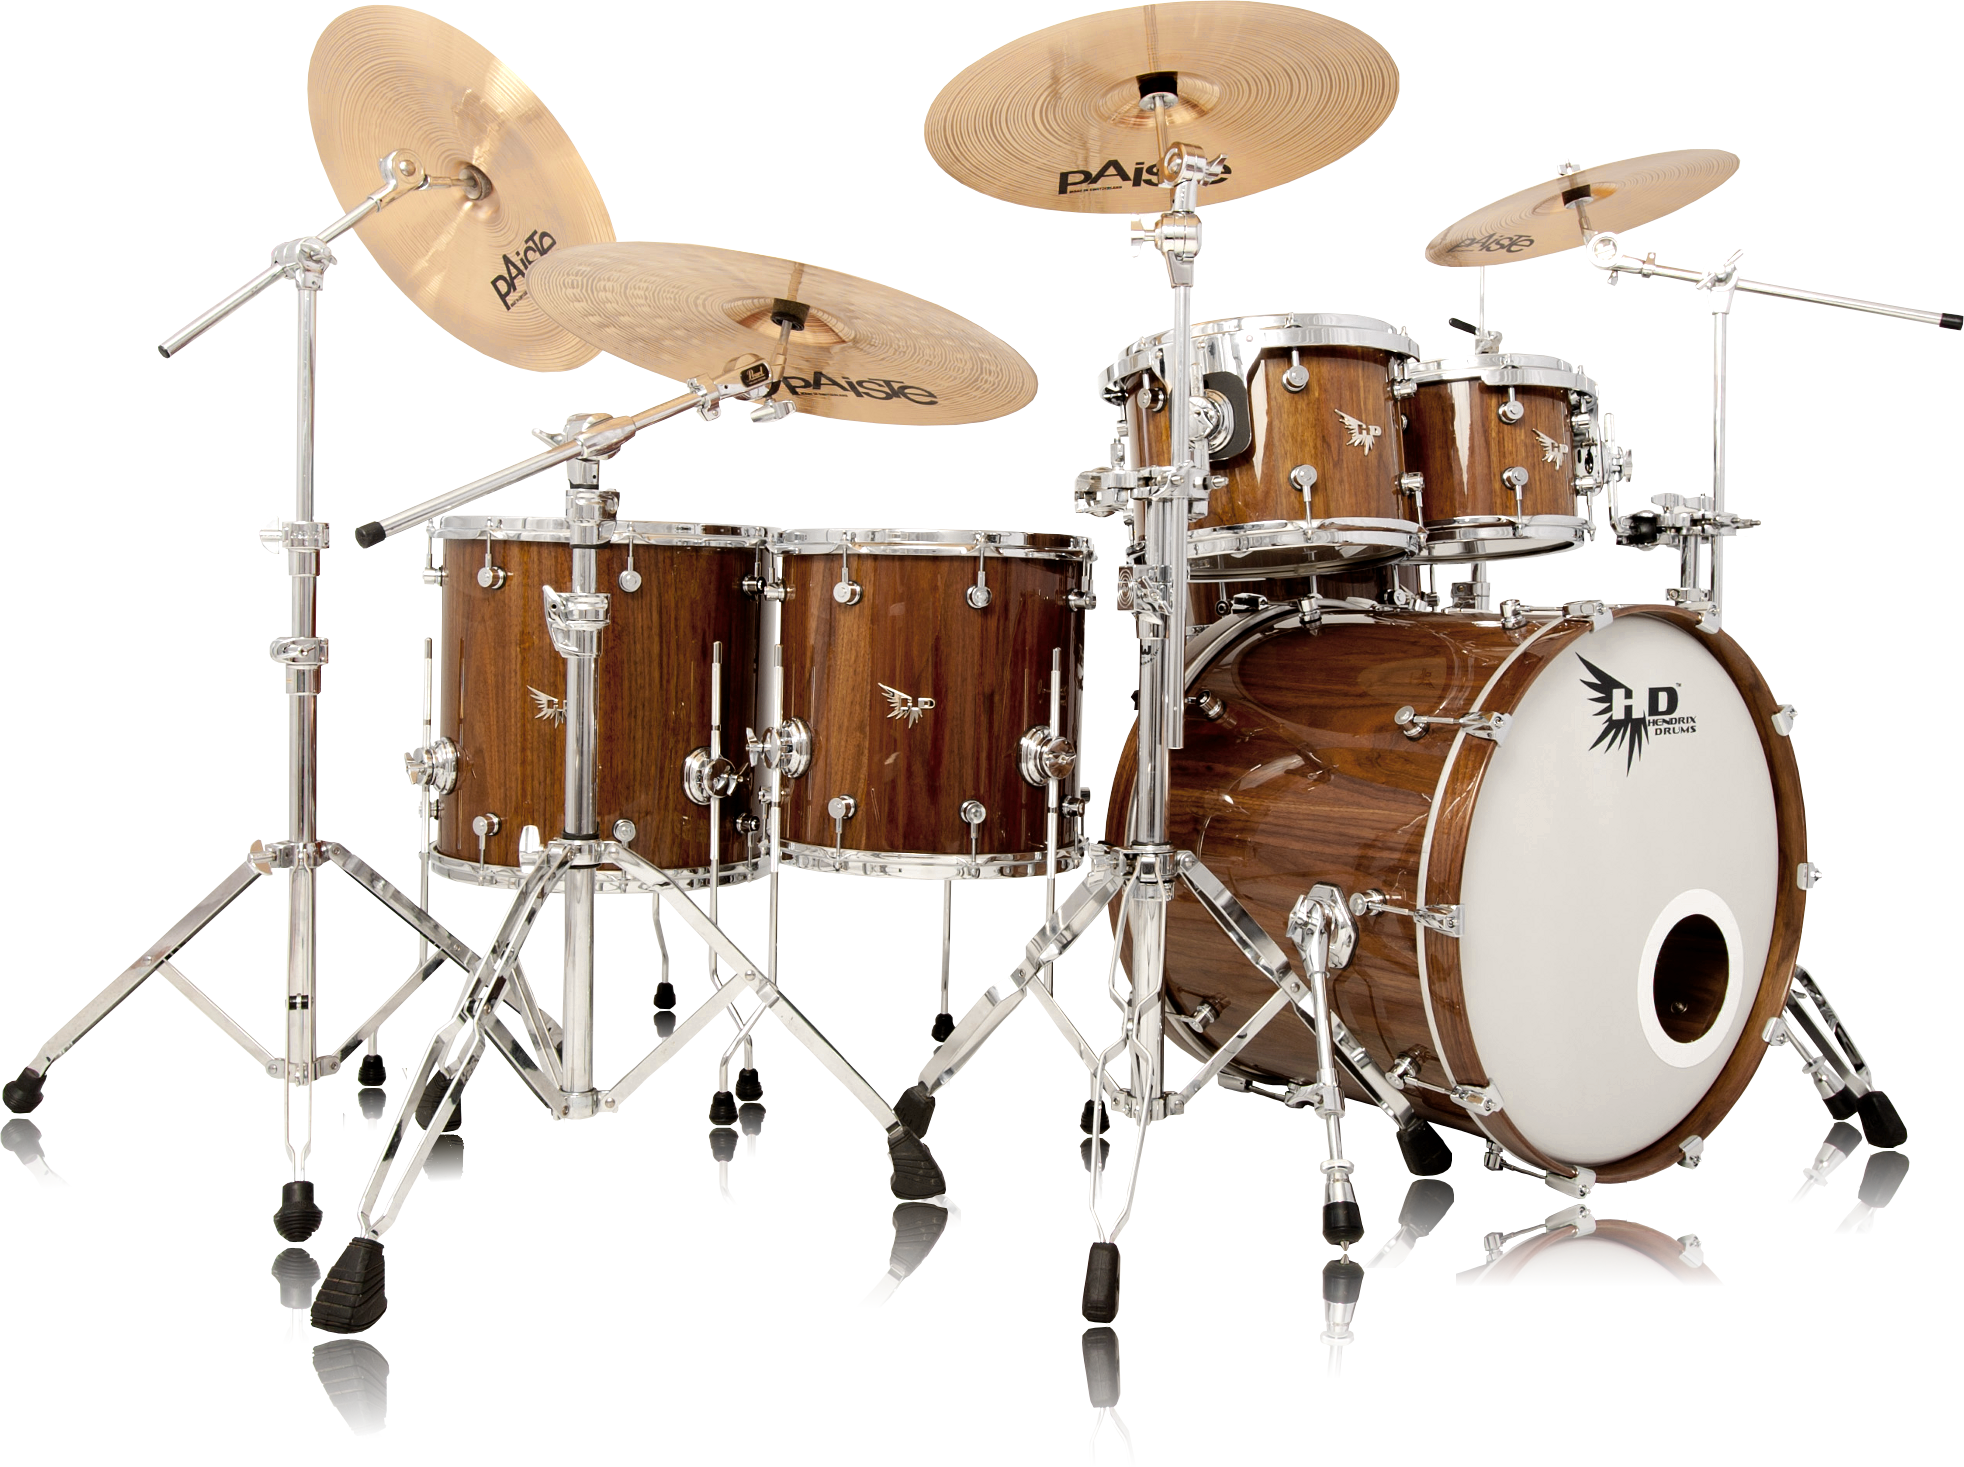 svg library download Stave kits hendrix archetype. Drums transparent drum kit